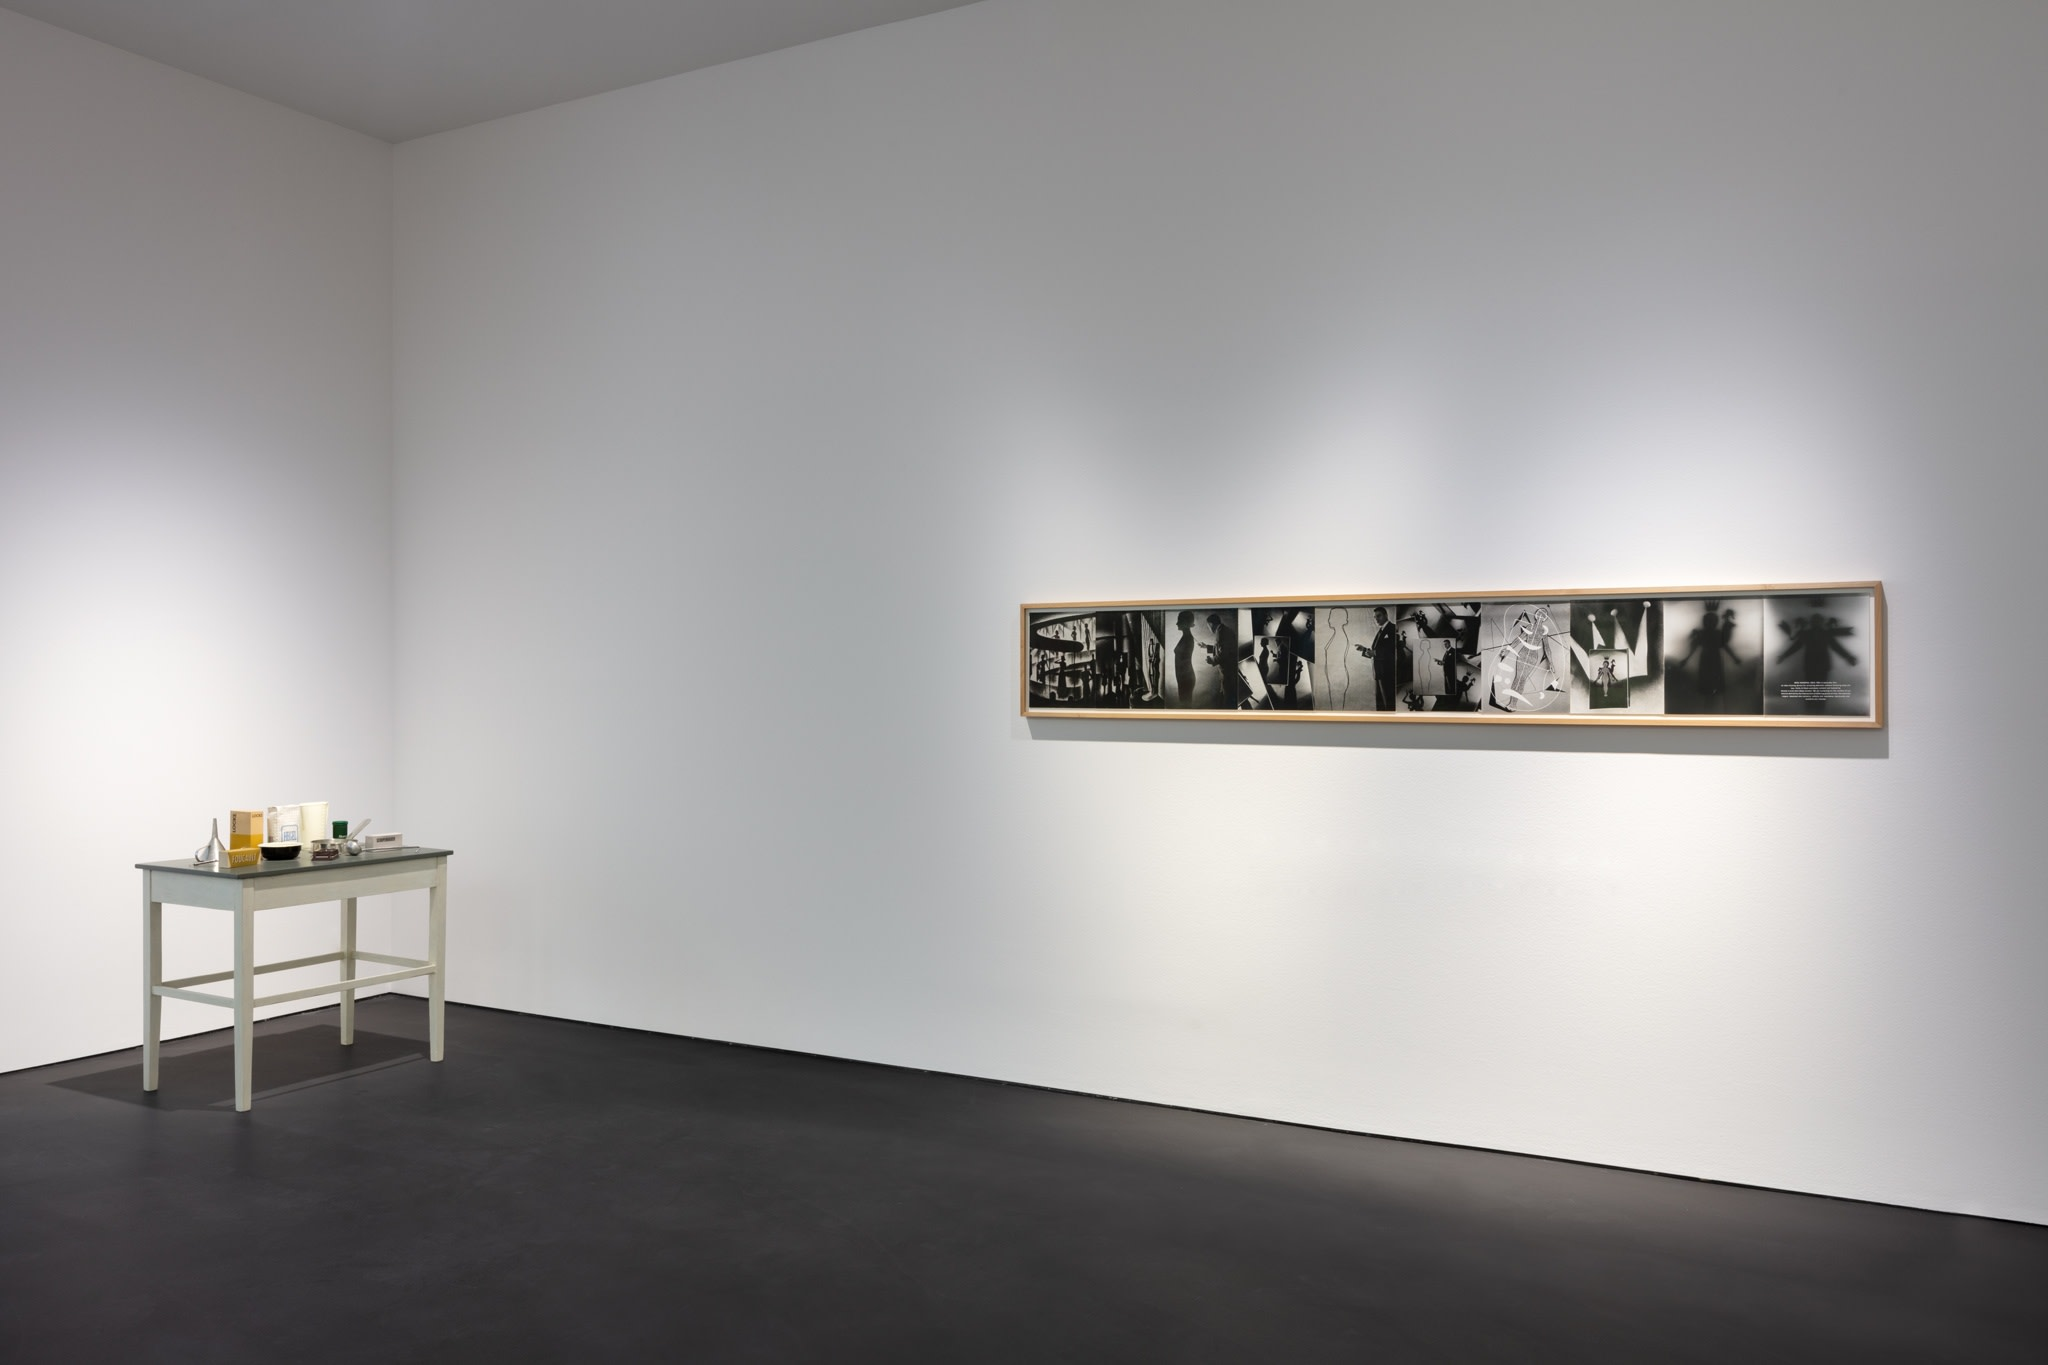 Left: Roman Ondak, Sated Table, 1997, silkscreen print on cardboard, kitchen utensils, wooden table 100 x 92 x 59 cm (39 3/8 x 36 1/4 x 23 1/4 in); right: General Idea Search for the Spirit, 1976, gelatin silver prints mounted on mat supports, 34,3 x 266,7 cm (13 1/2 x 105 in) (overall). Photo © Andrea Rossetti